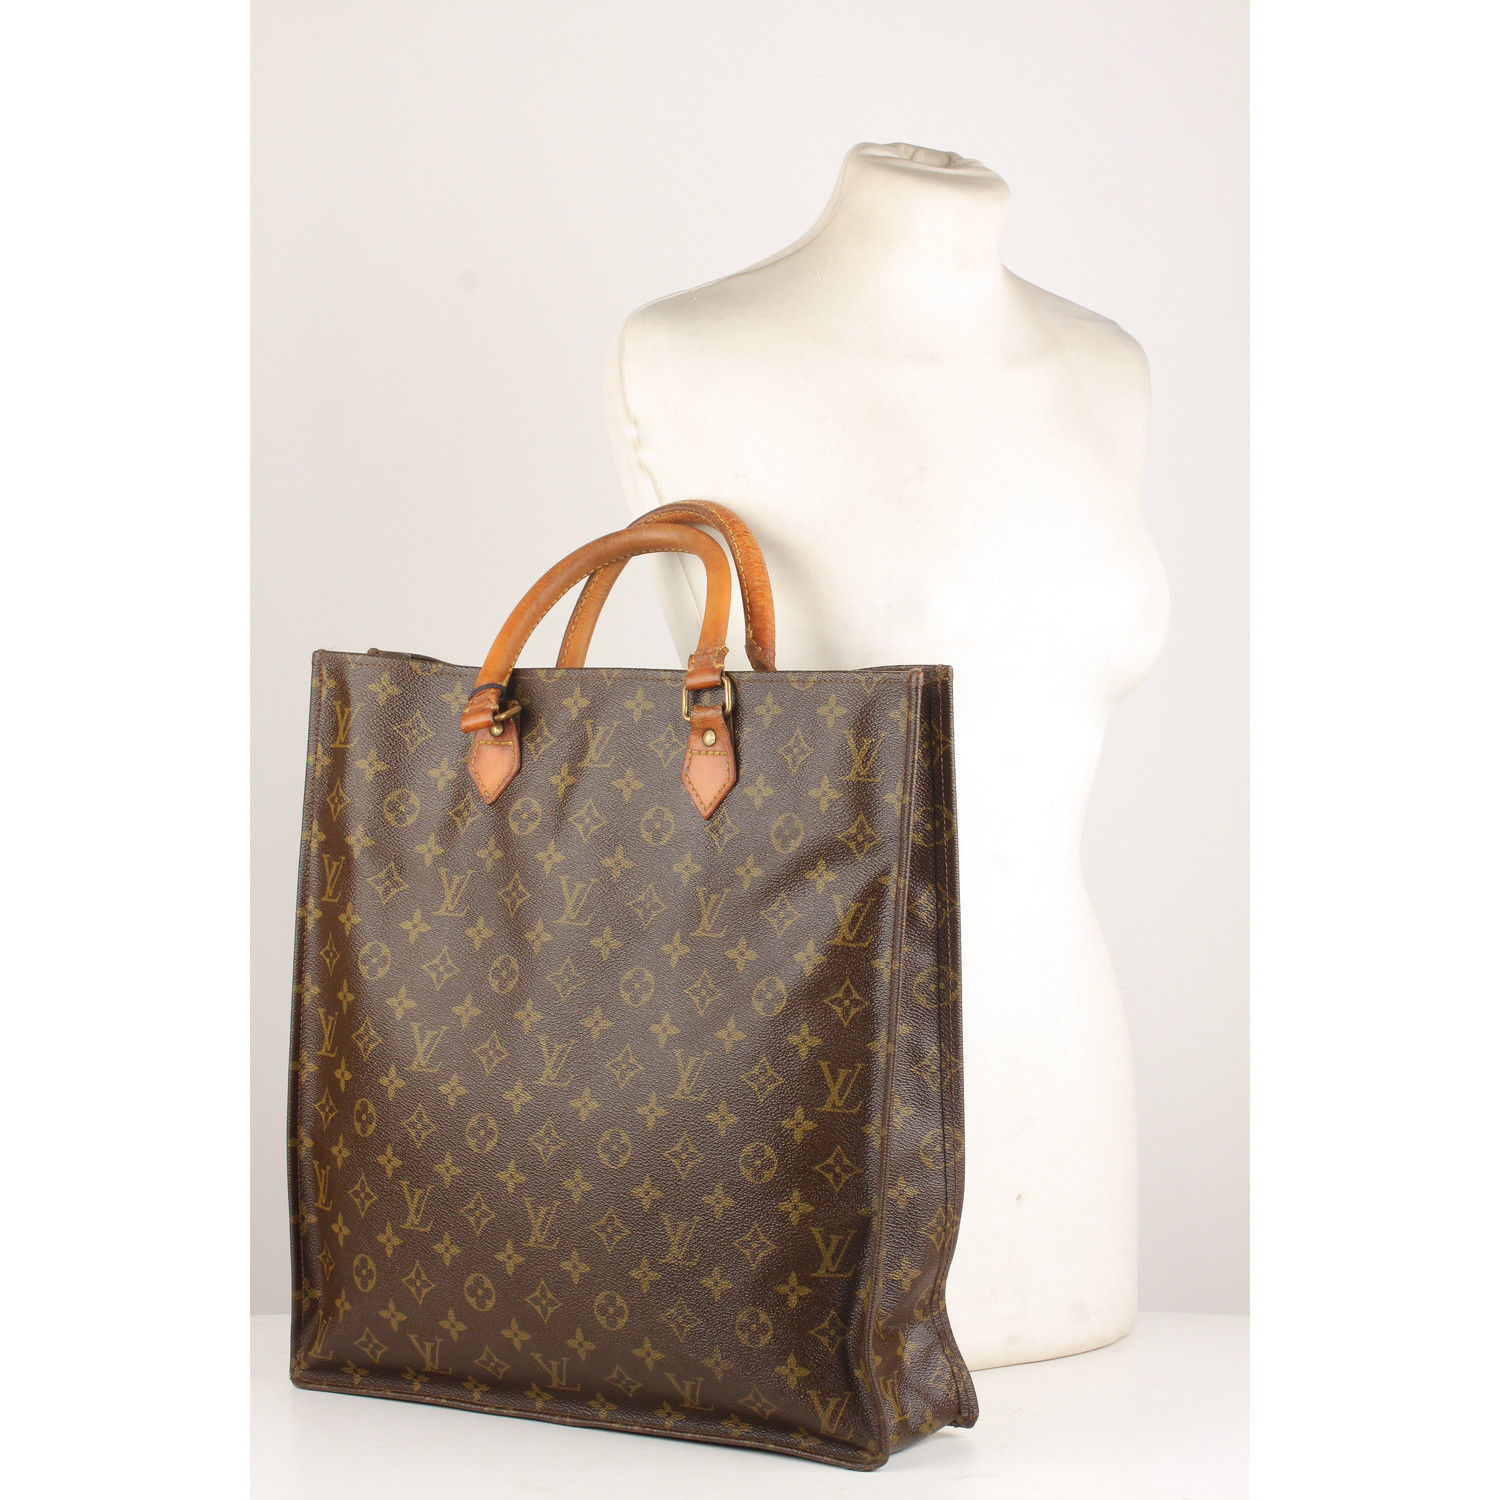 33bdd6e765b9 S l1600. S l1600. Previous. Authentic Louis Vuitton Vintage Brown Monogram Sac  Plat GM Tote Bag Handbag